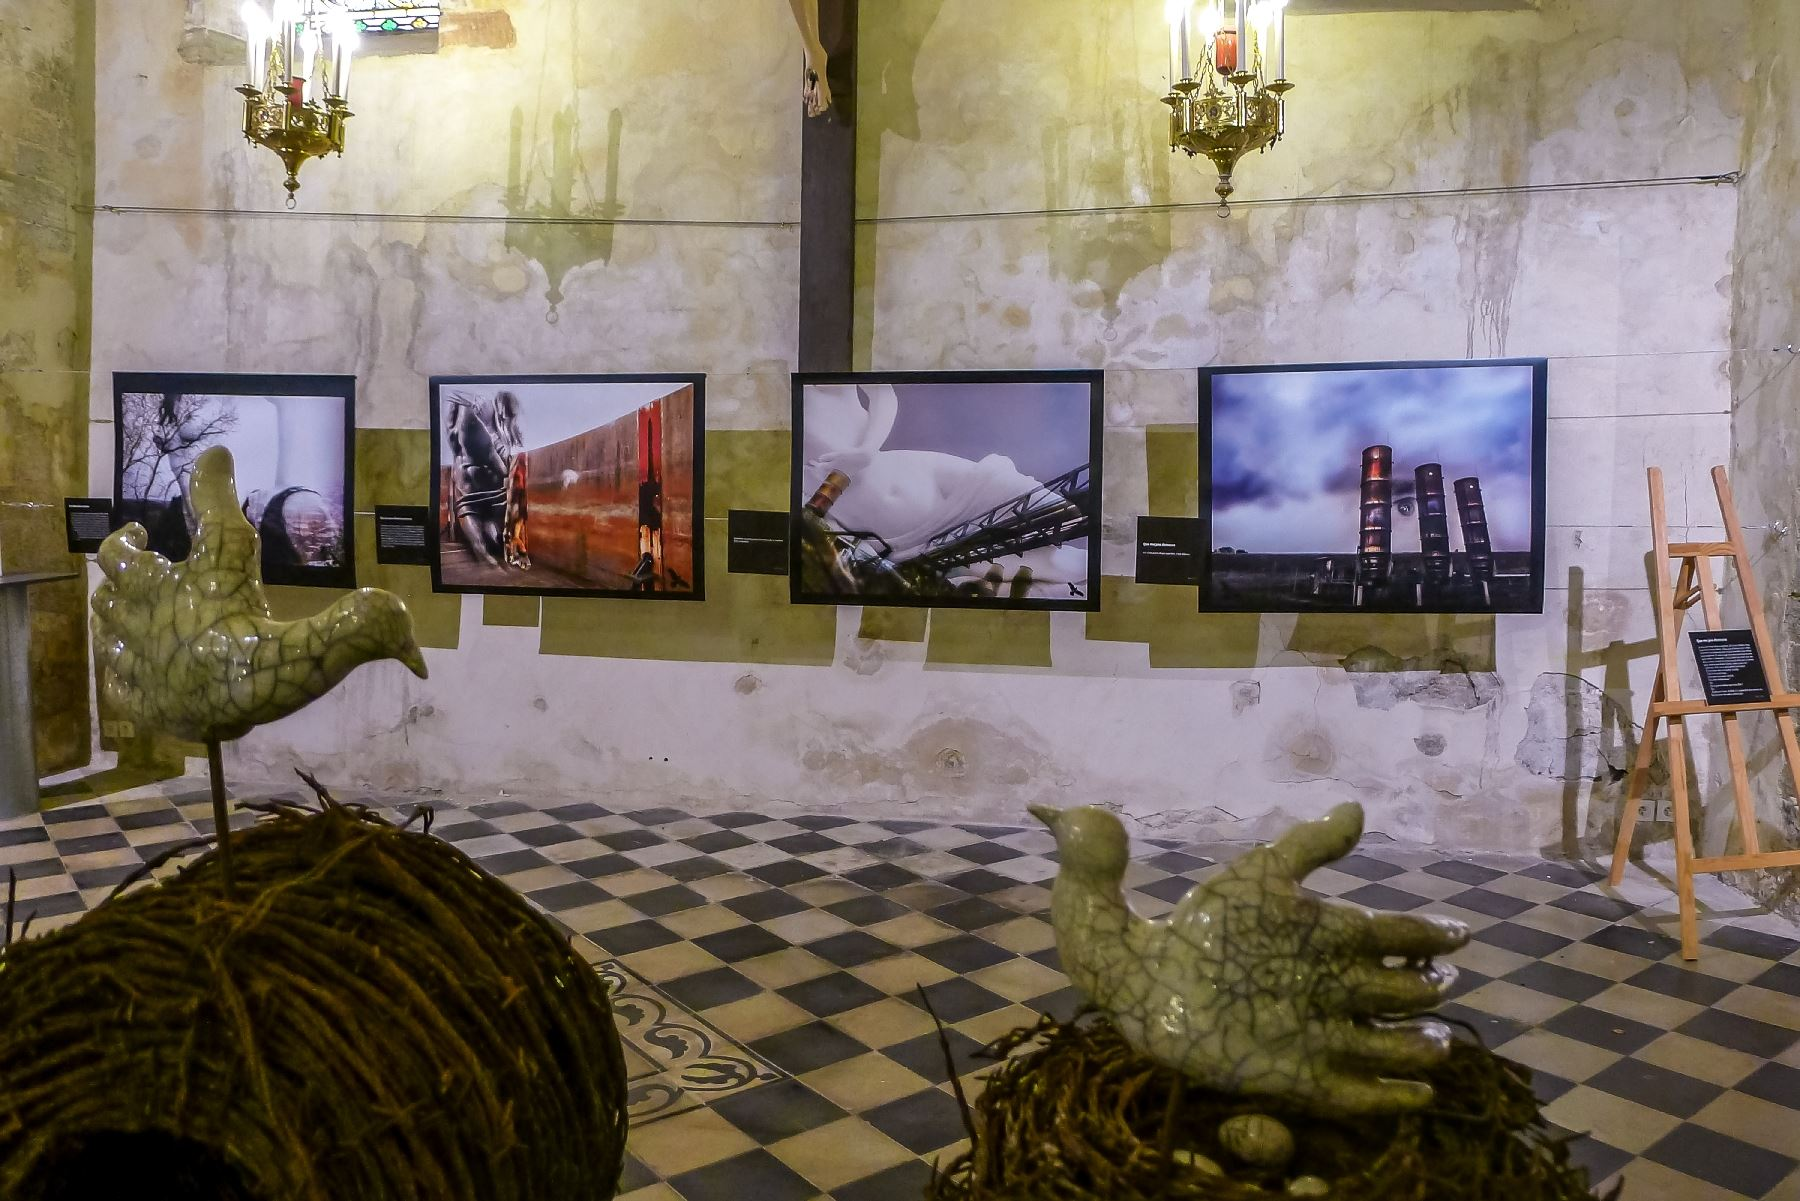 Church exhibit